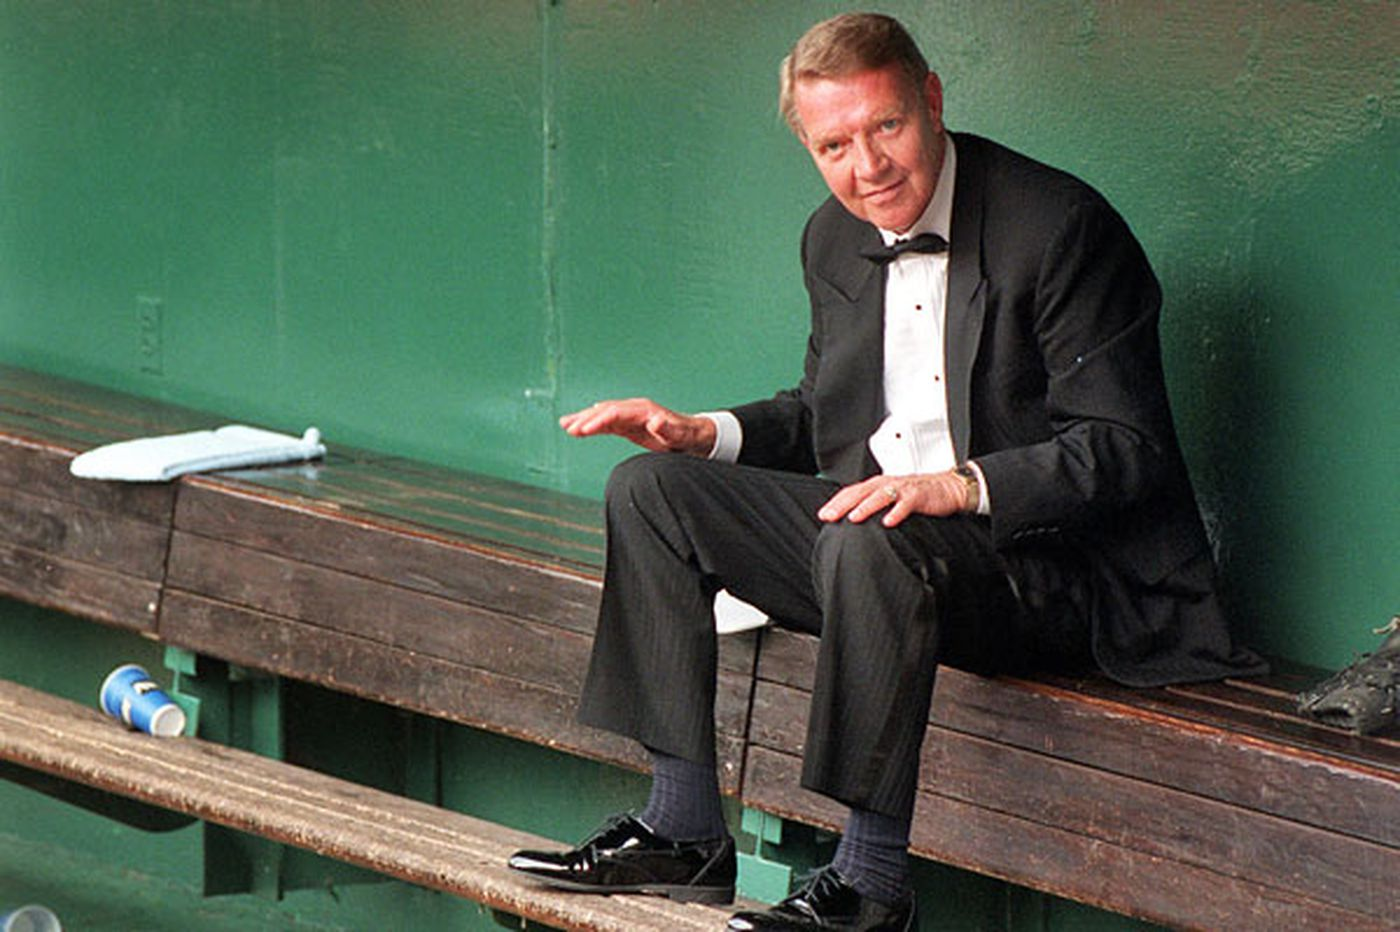 Ten years later, Phillies continue to pay almost daily tributes to Harry Kalas